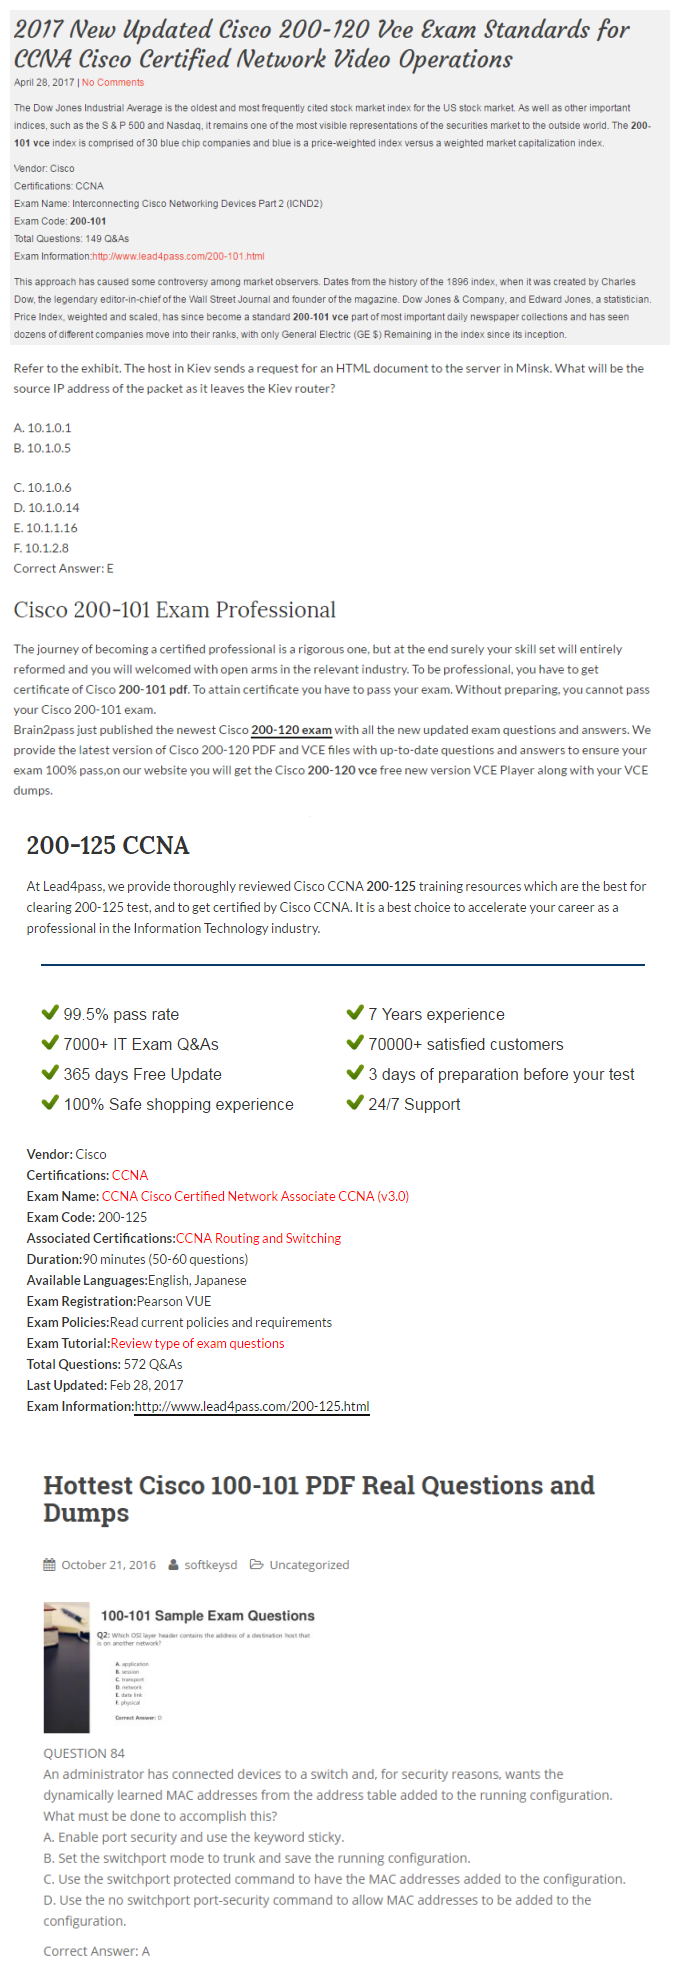 CCNA | Unlimited Lifetime Access to 1800+ Certification Exams